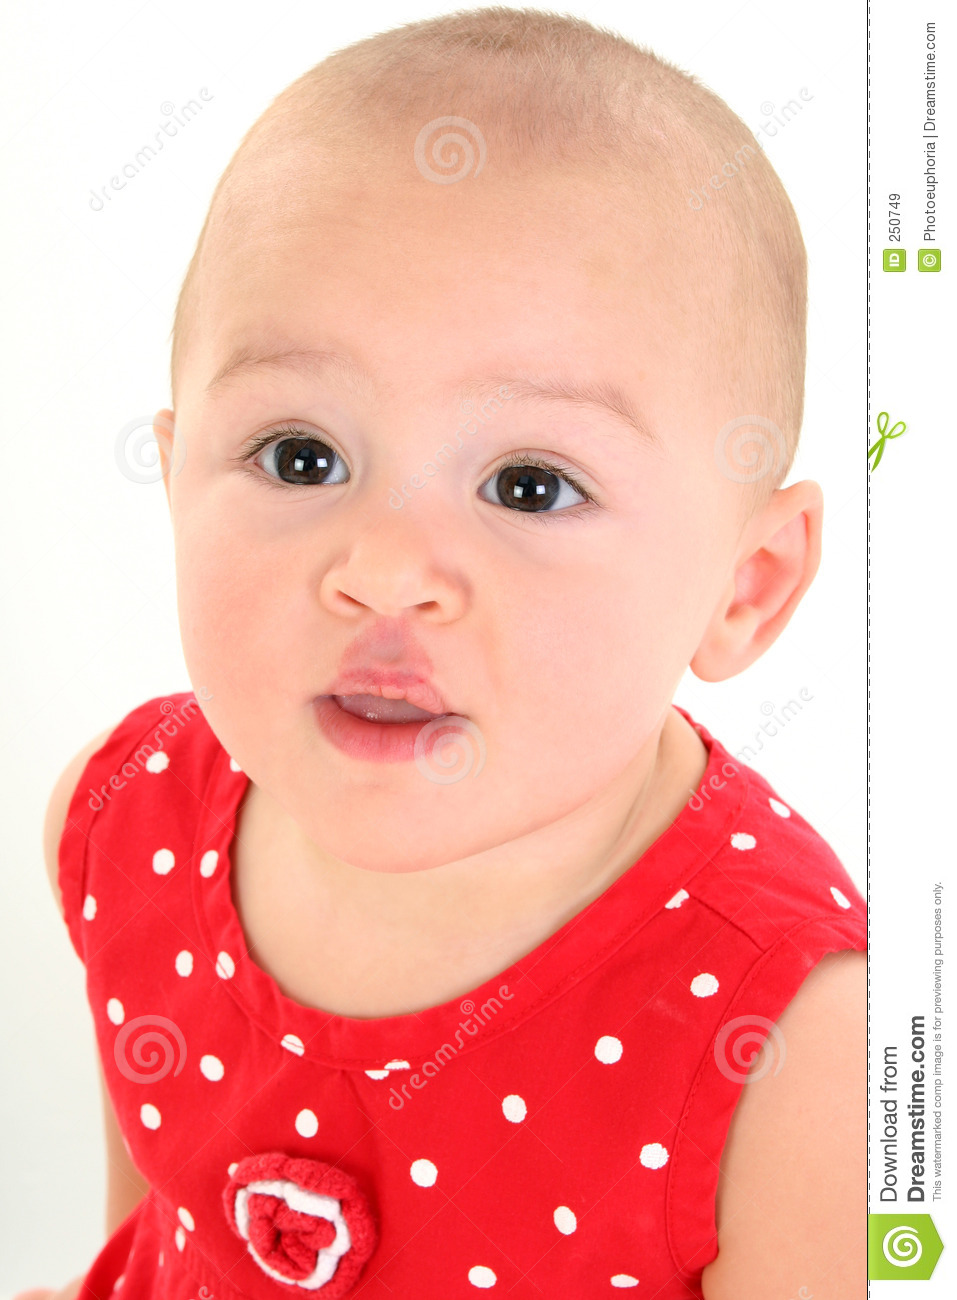 Beautiful Baby Girl With Stork Bite On Upper Lip Royalty Free Stock ...